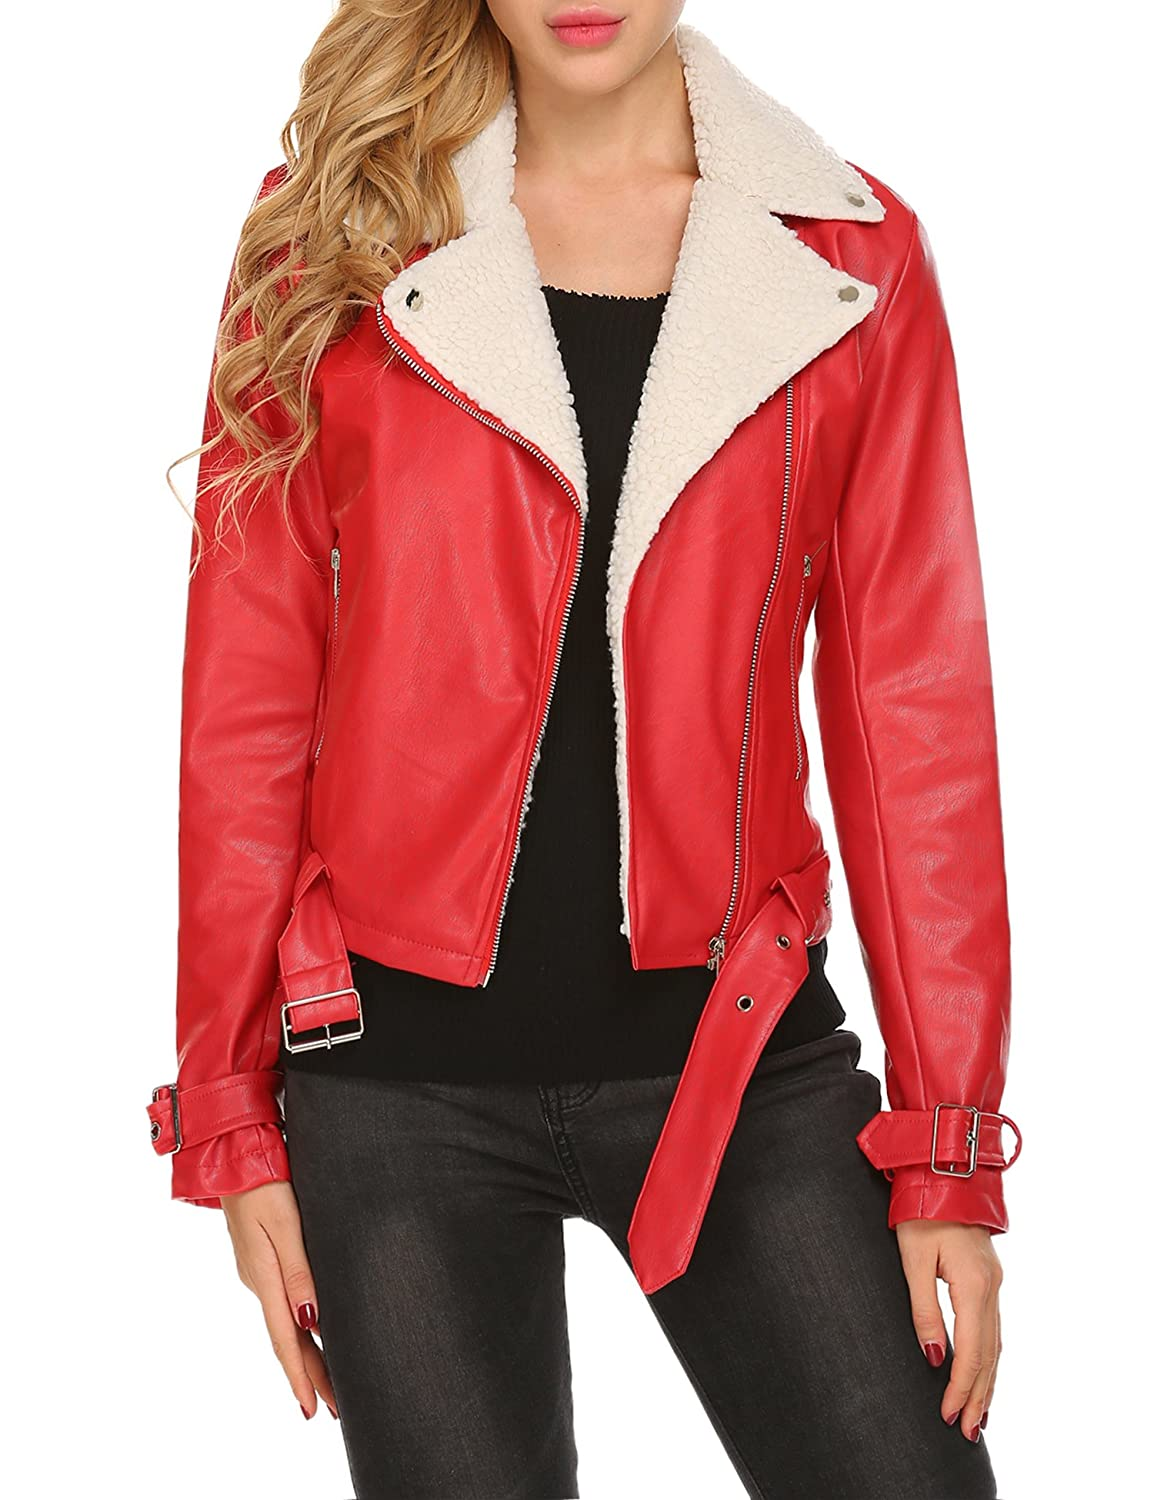 b2e9004b0642 Top 10 wholesale Black Womens Faux Leather Jackets - Chinabrands.com